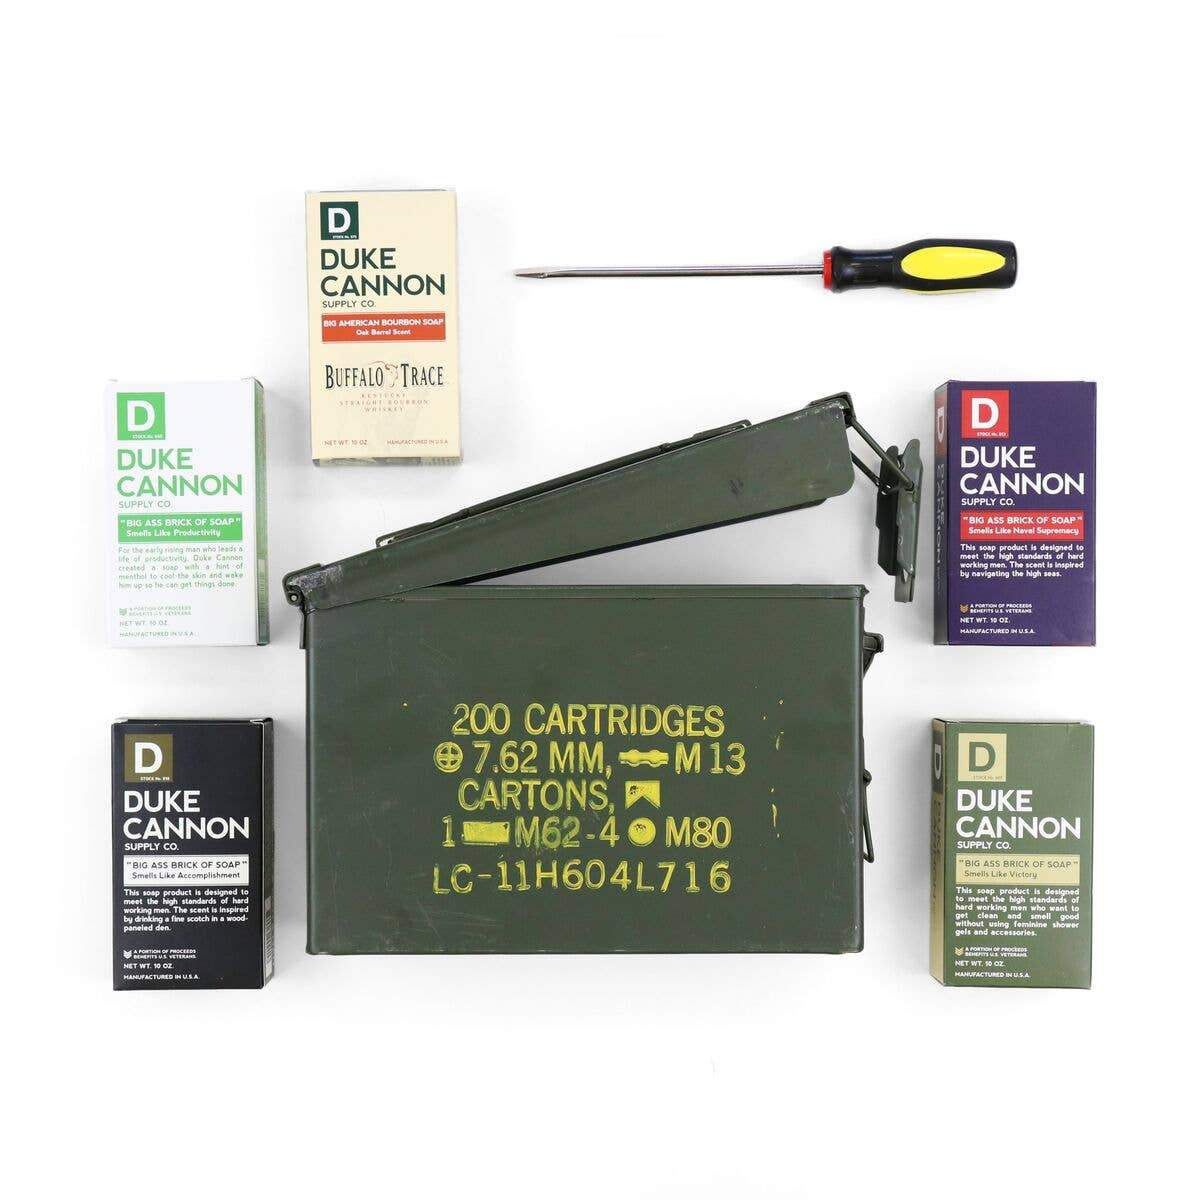 fisher-couture-com-Duke Cannon-Duke Cannon Ammo Can Gift Set